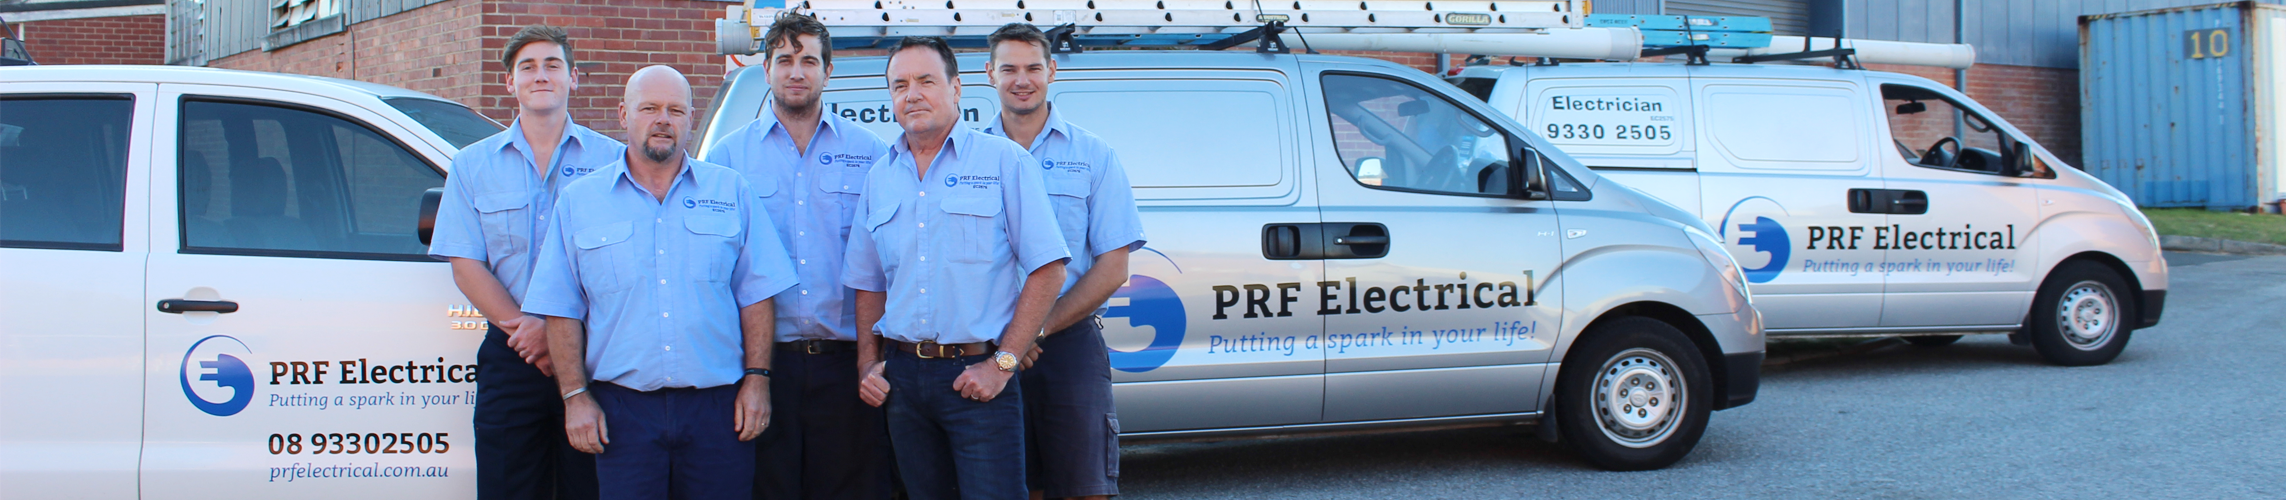 PRF Electrical - Domestic, Commercial and Industrial Electricians